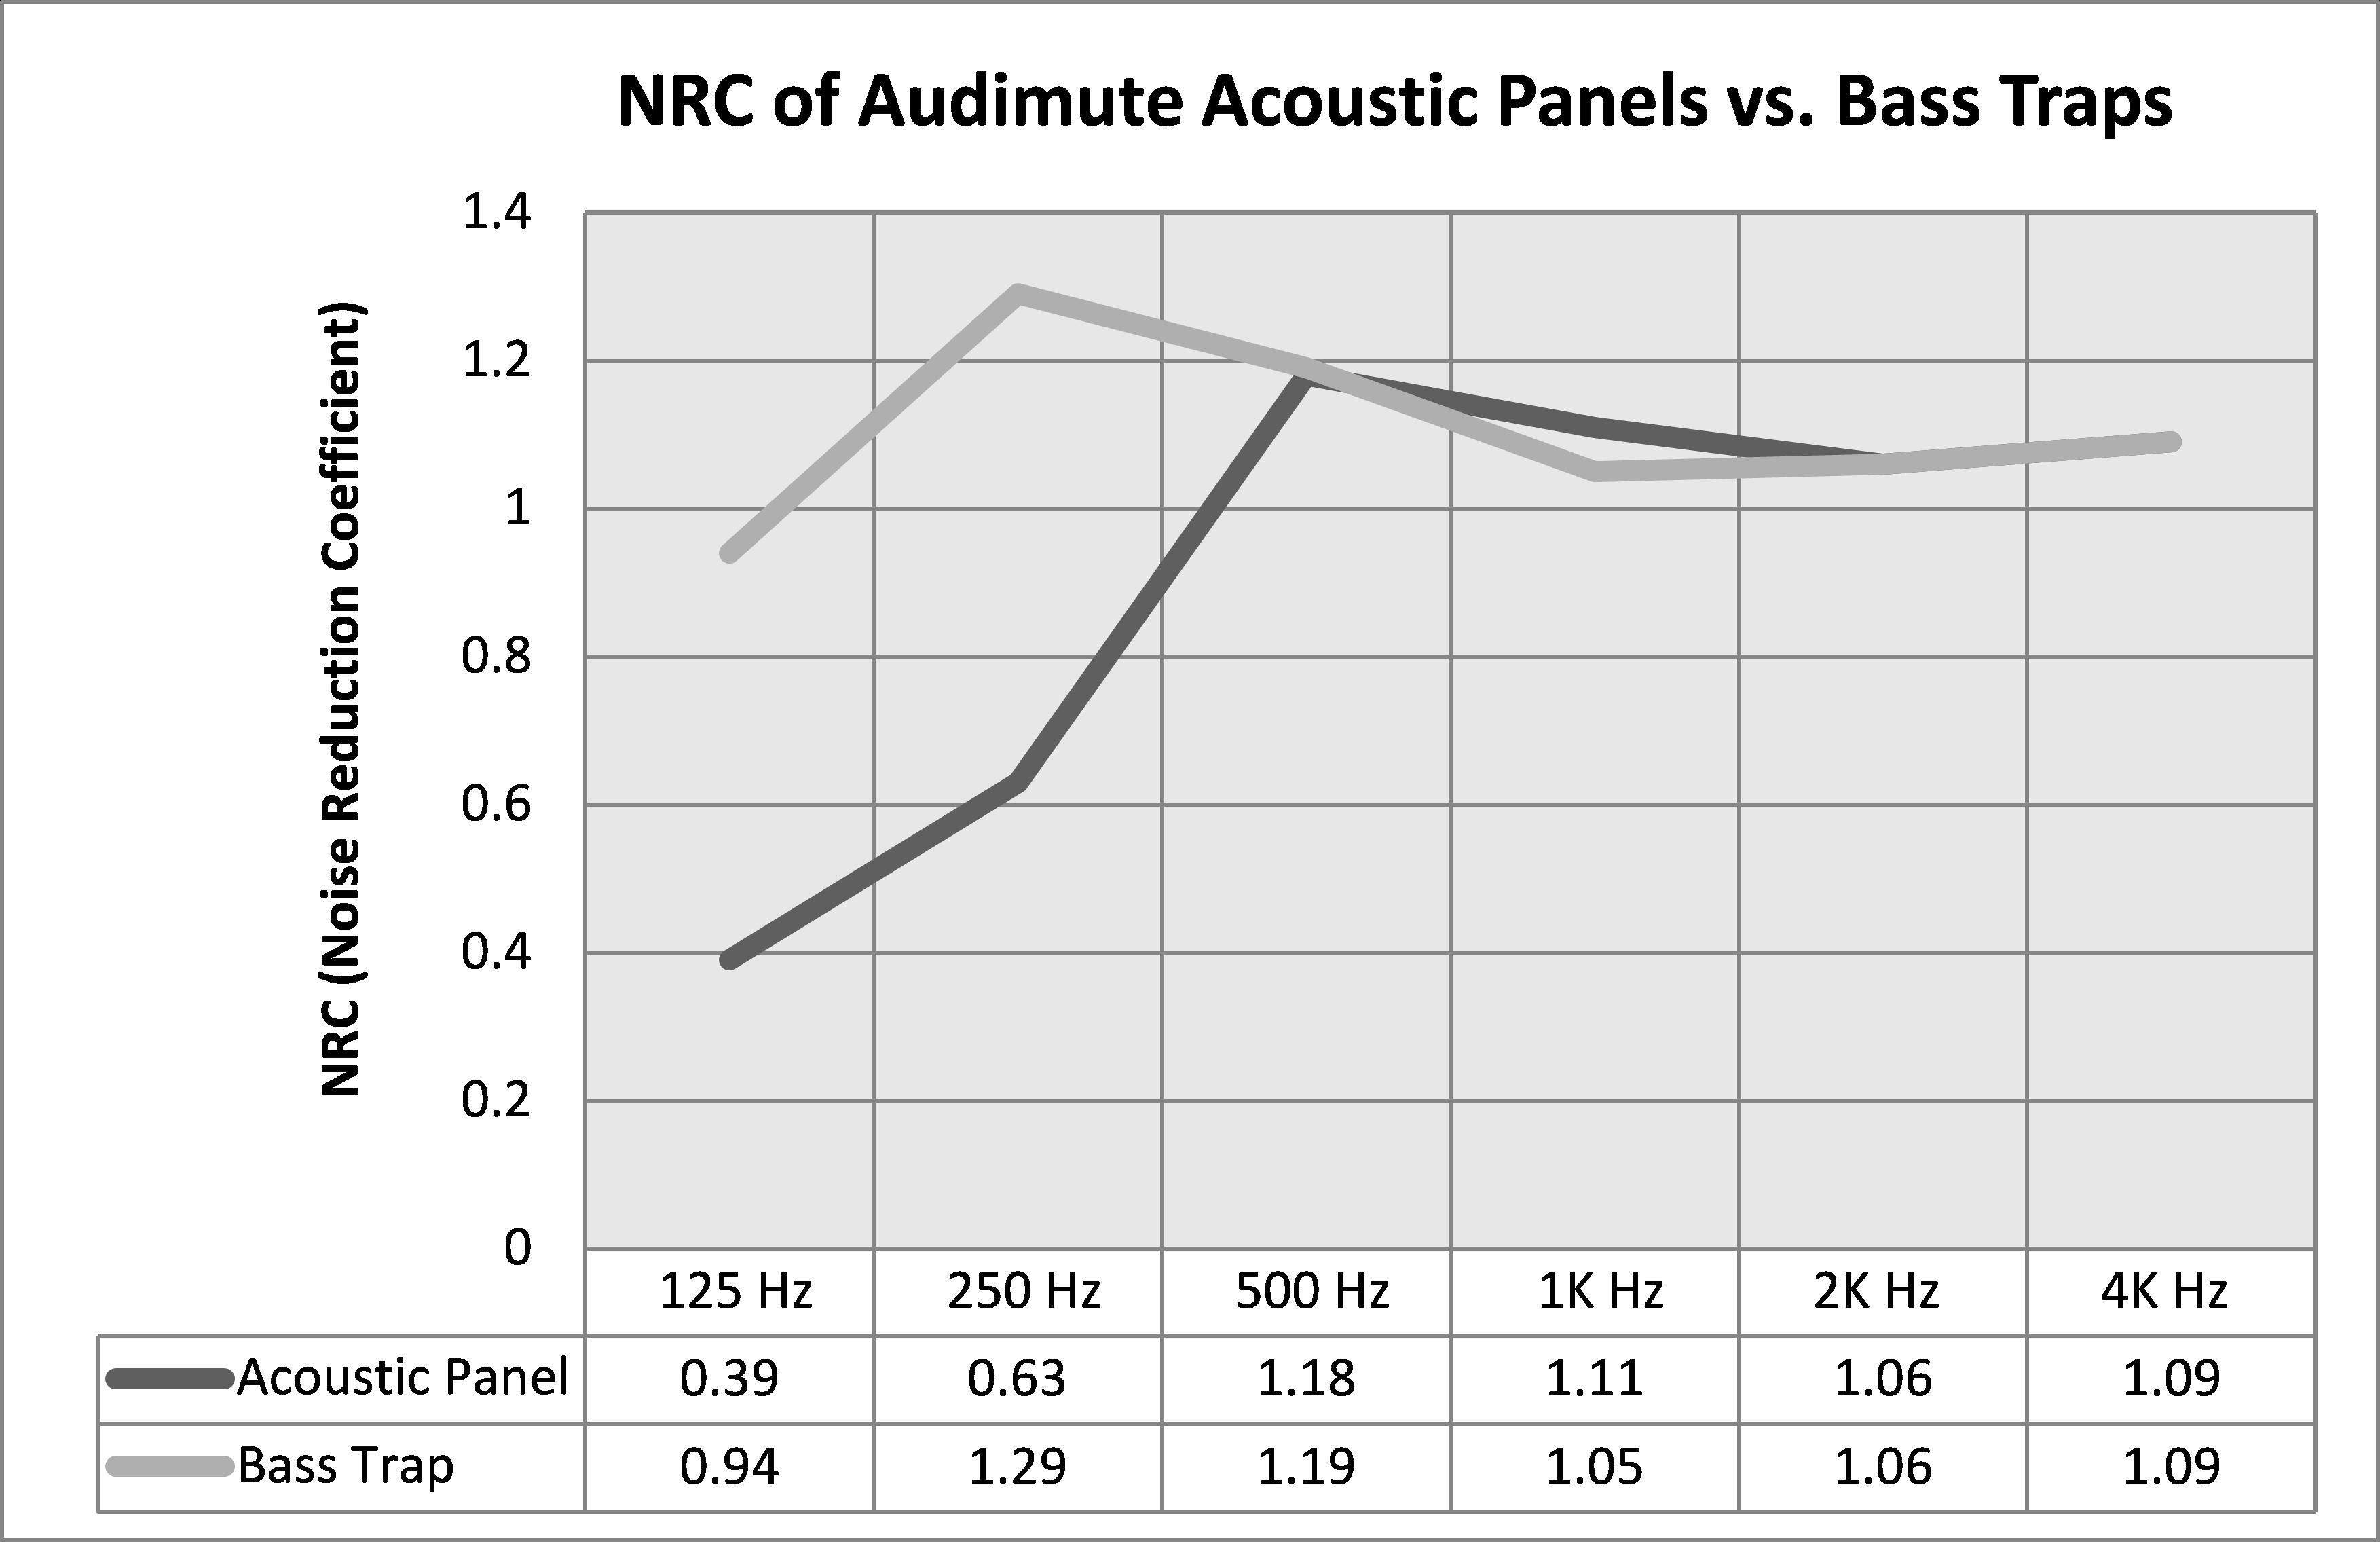 NRC of Audimute Acoustic Panels vs. Bass Traps